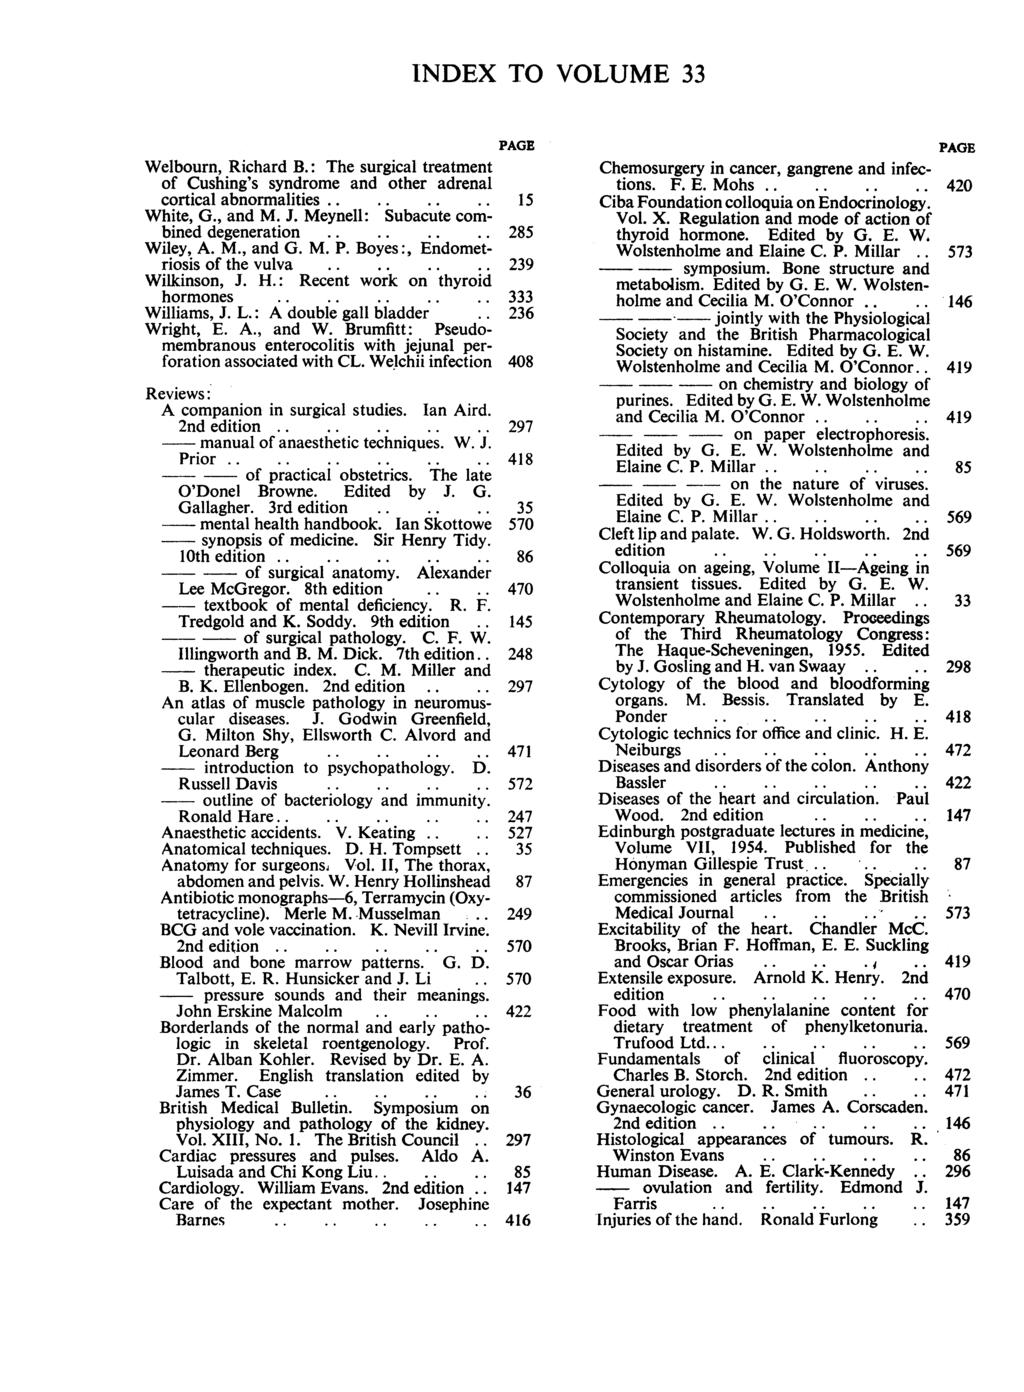 INDEX TO VOLUME 33 The surgical treatment Welbourn, Richard B.: of Cushing's syndrome and other adrenal cortical abnormalities...... 15 White, G., and M. J. Meynell: Subacute combined degeneration.